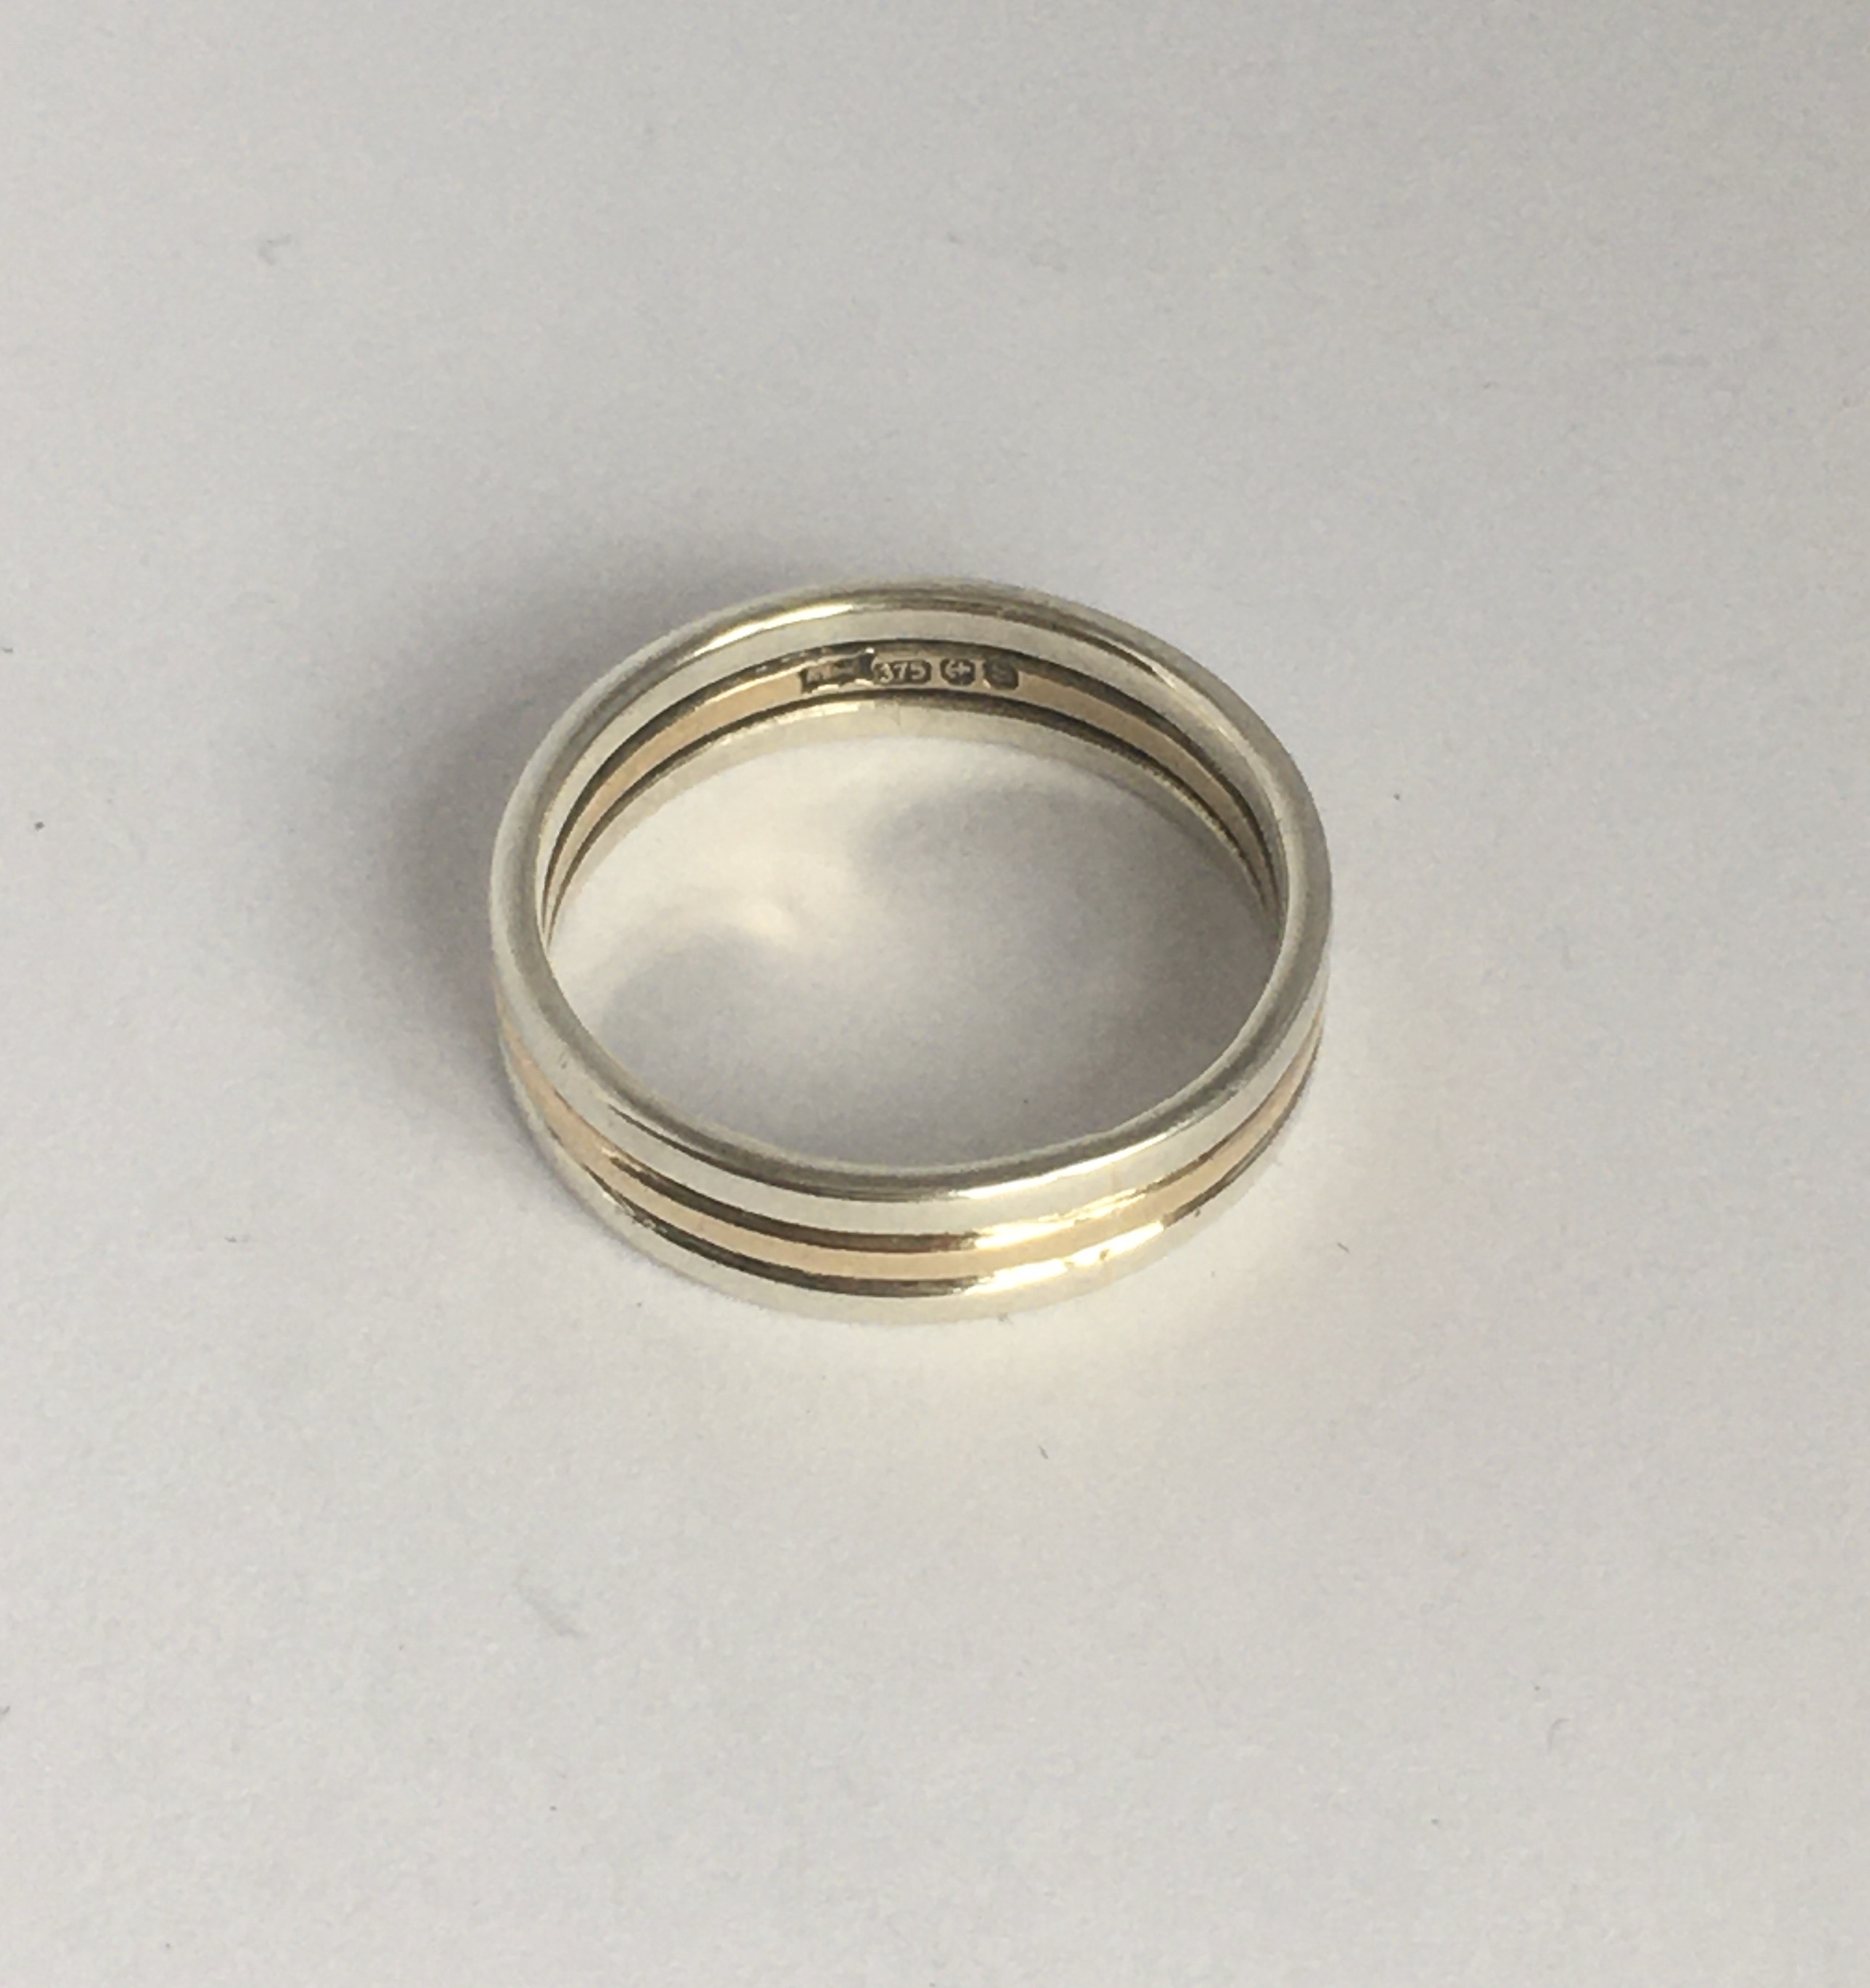 Banded gold ring